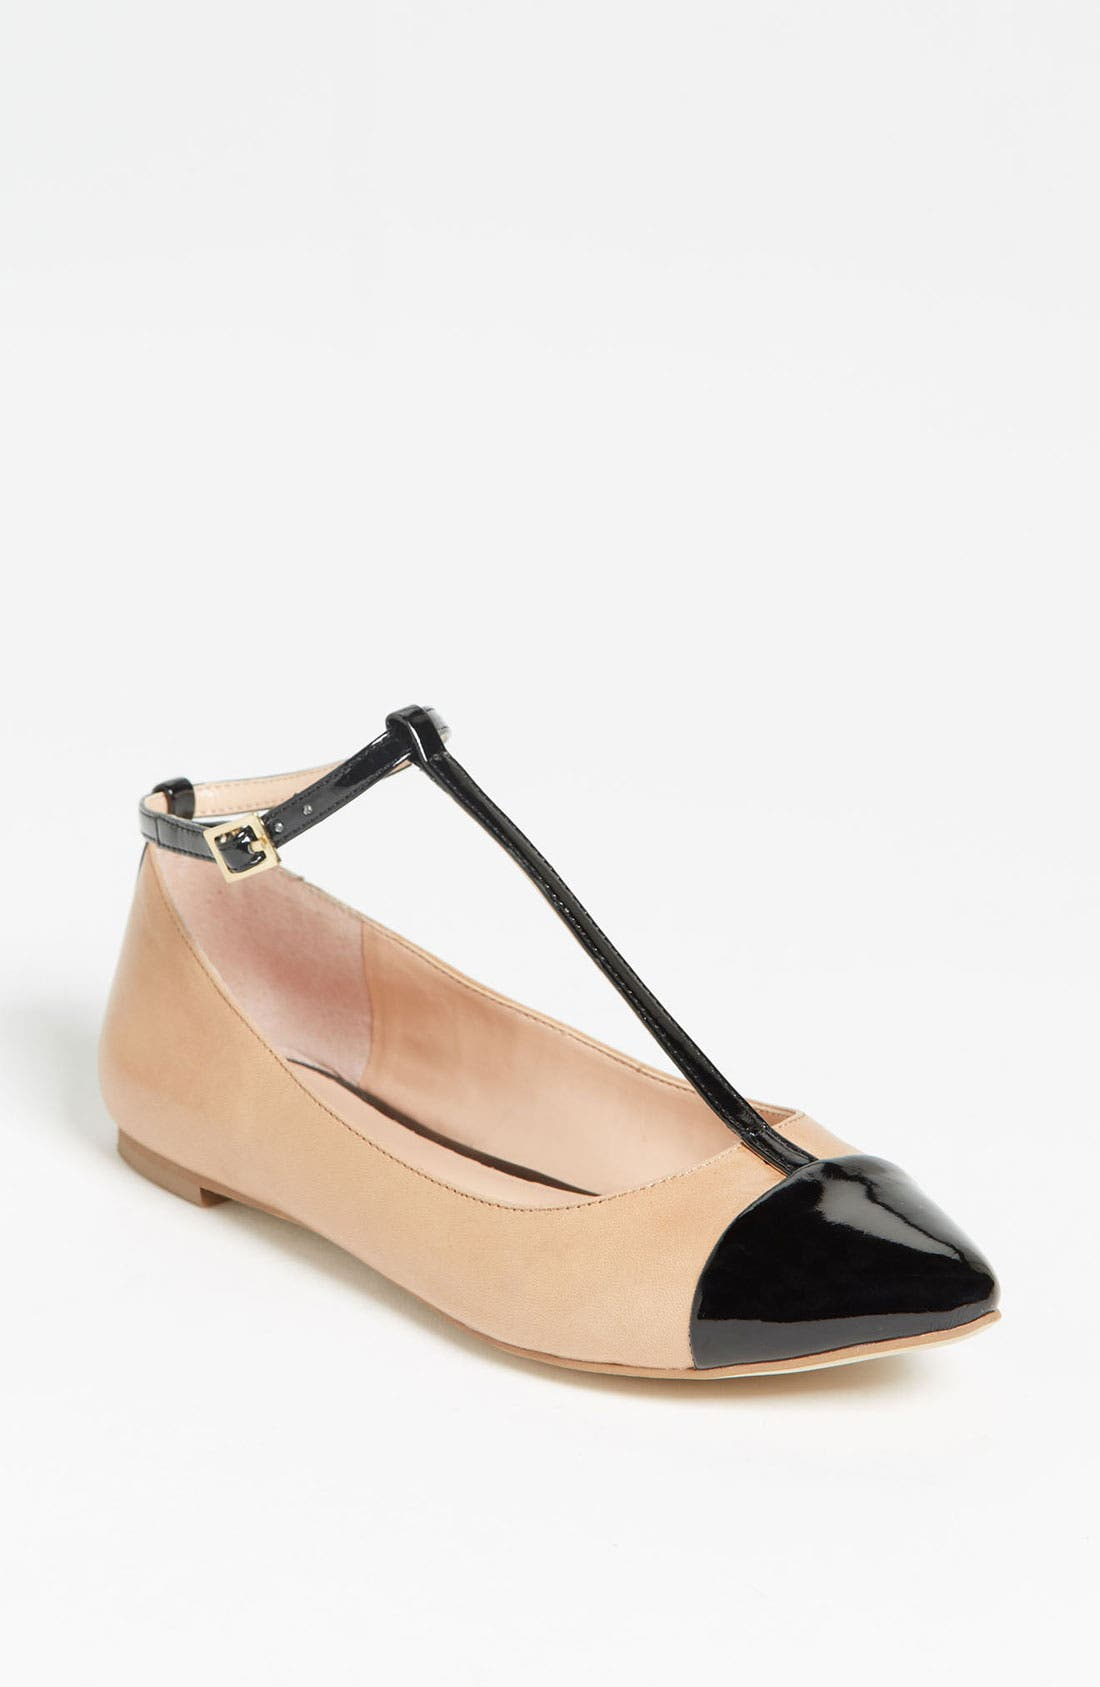 ,                             Julianne Hough for Sole Society 'Addy' Flat,                             Main thumbnail 11, color,                             101